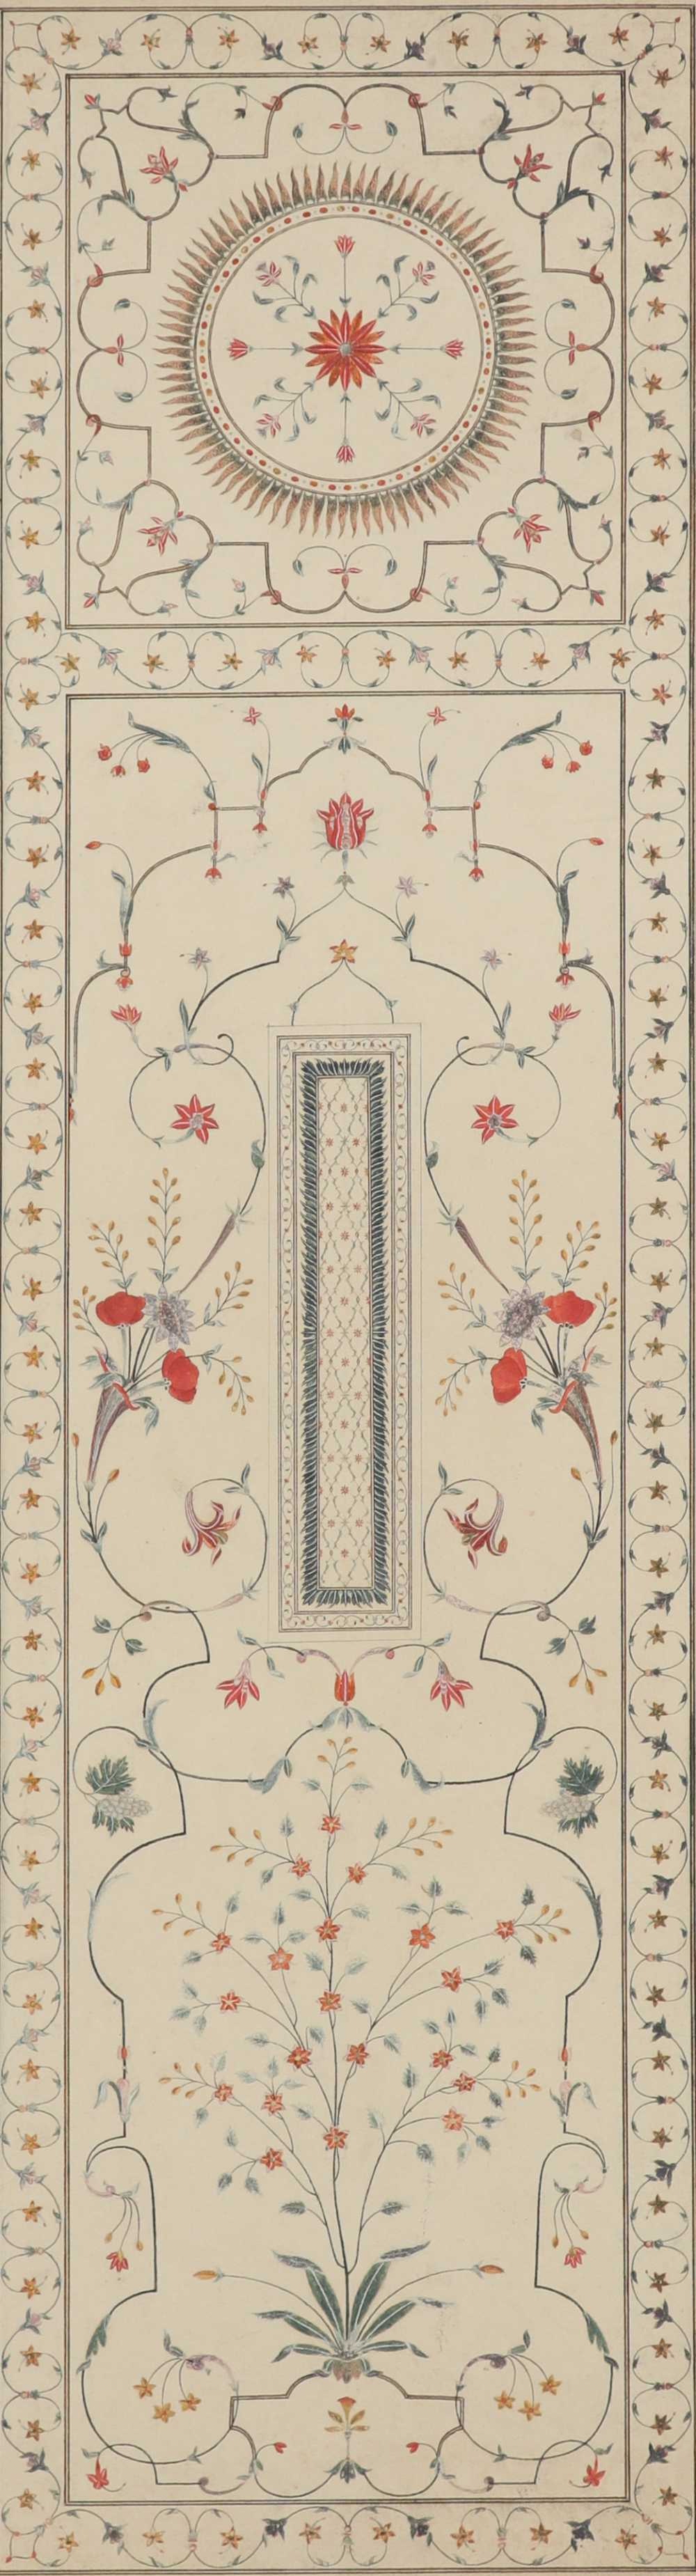 Company School c.1820 Two copies of the pietra dura work from the cenotaph, Taj Mahal, Agra A